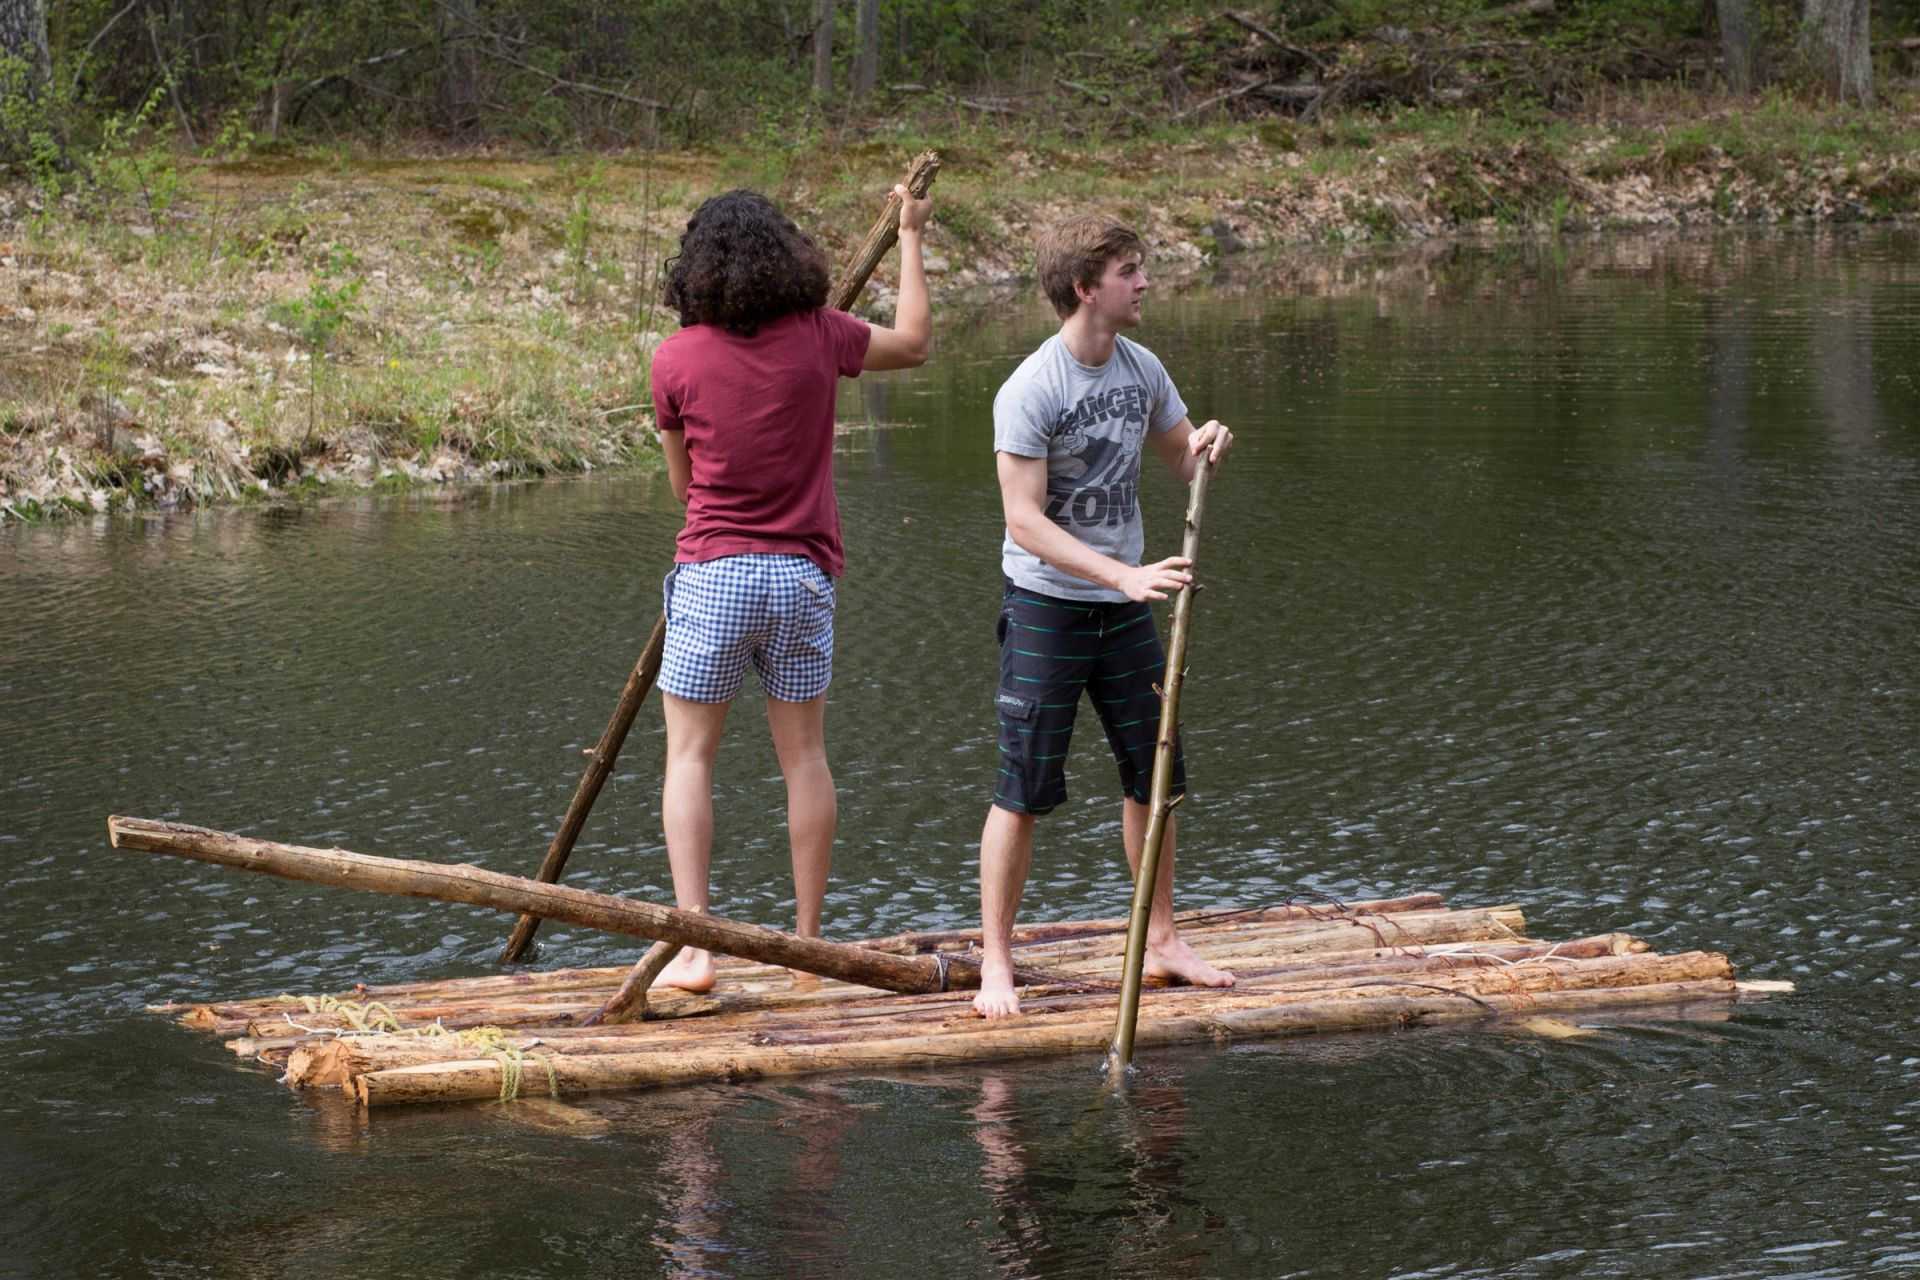 As a final project, Hunab Almehua '18, Jason Elder '18, and William Mussman '18 (not pictured) handcrafted a raft and tested its seaworthiness on the last day of Block.